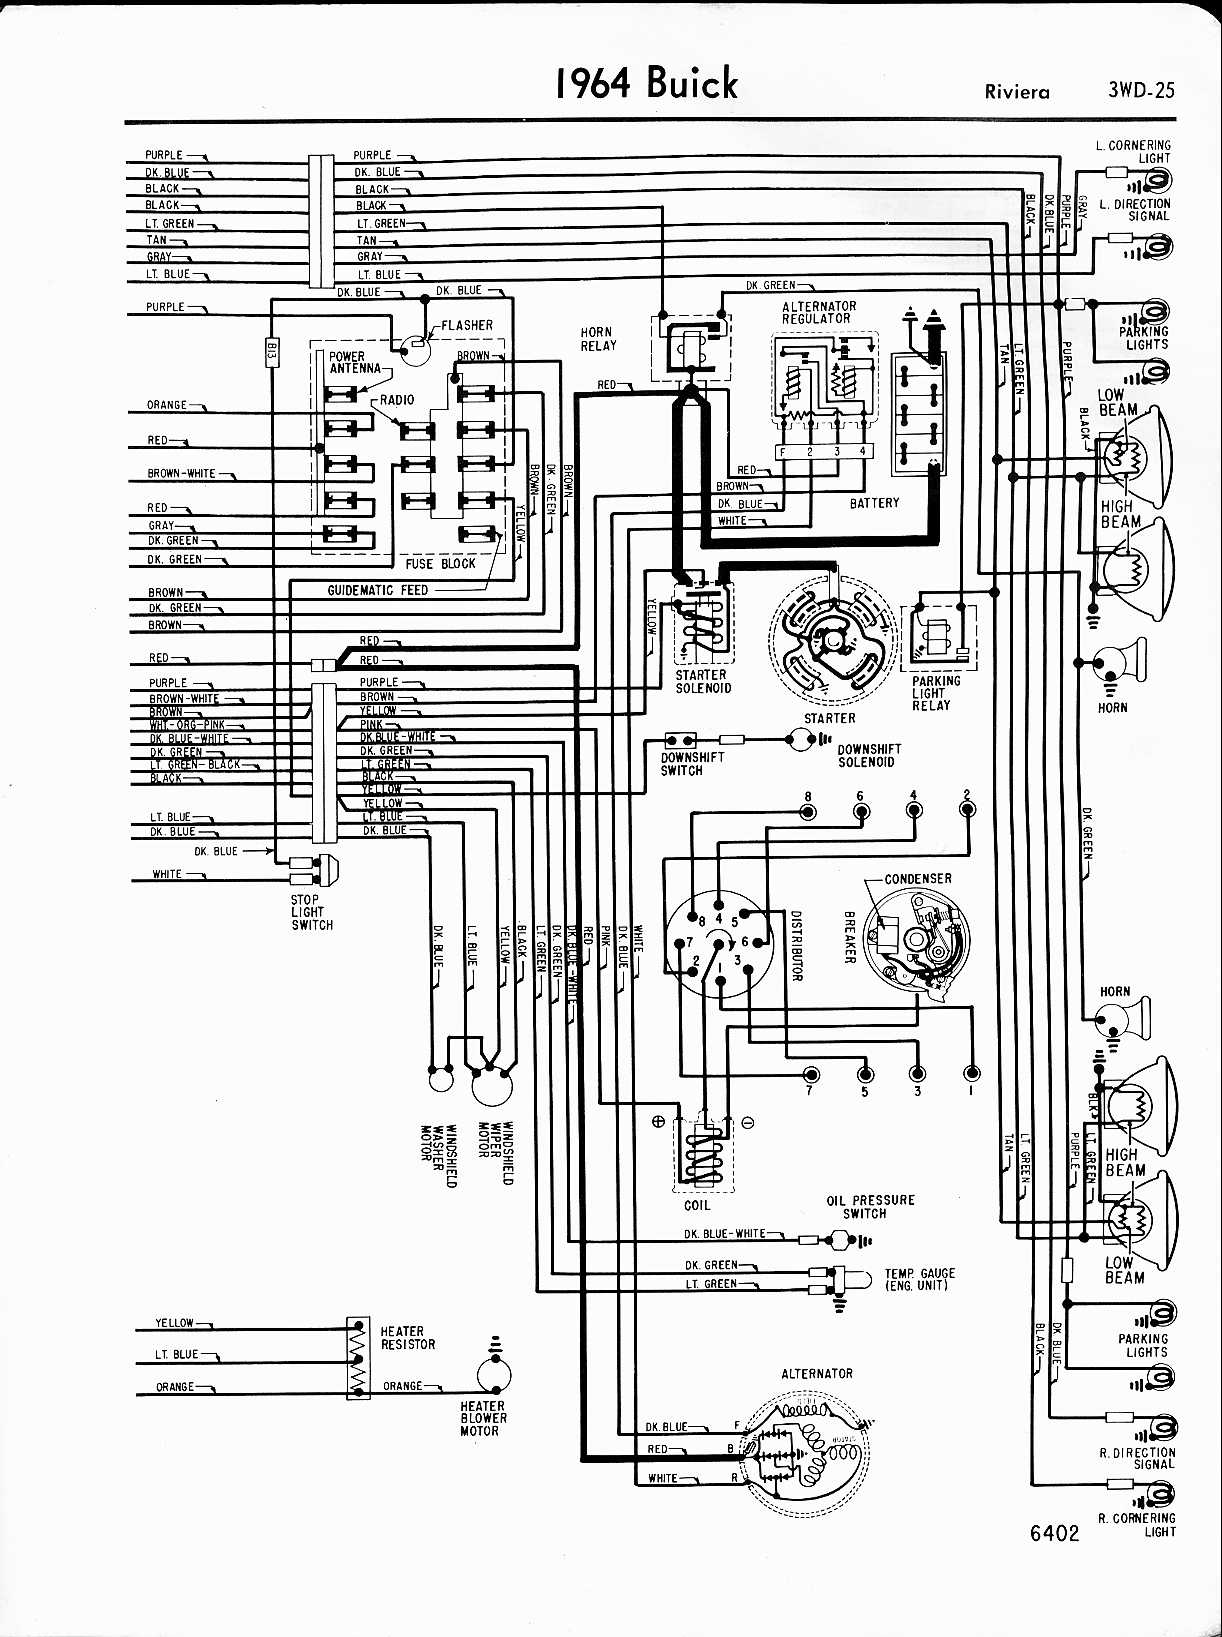 1991 1991 buick regal wiring diagrams | wiring diagram centre on 2000 buick  wiring diagram,